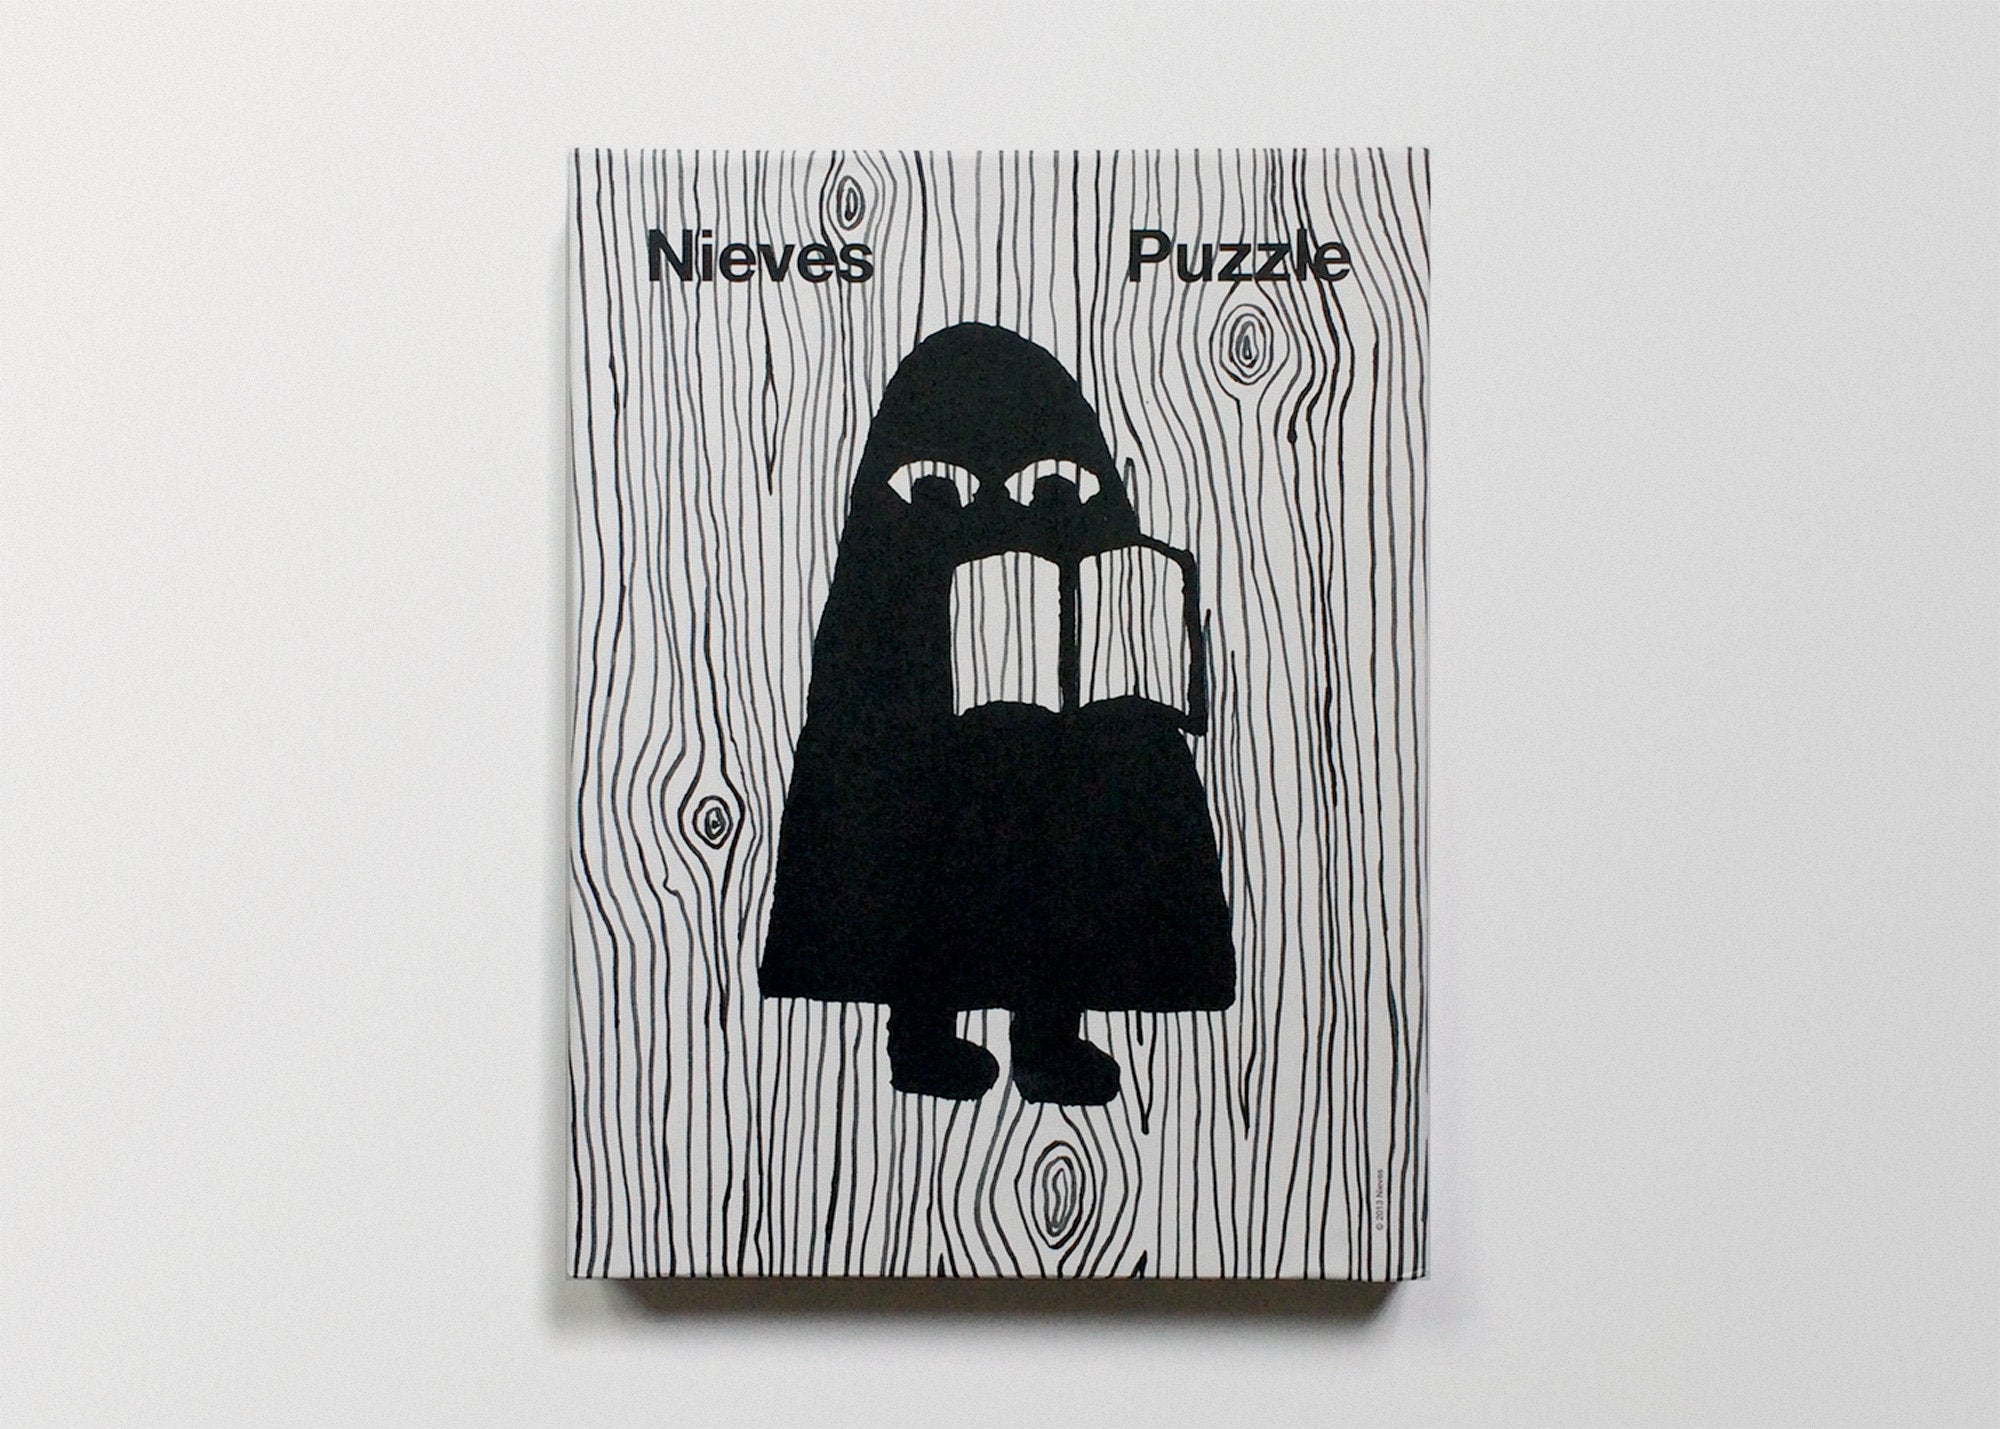 Nieves Puzzle - Object at Kavi Gupta Editions